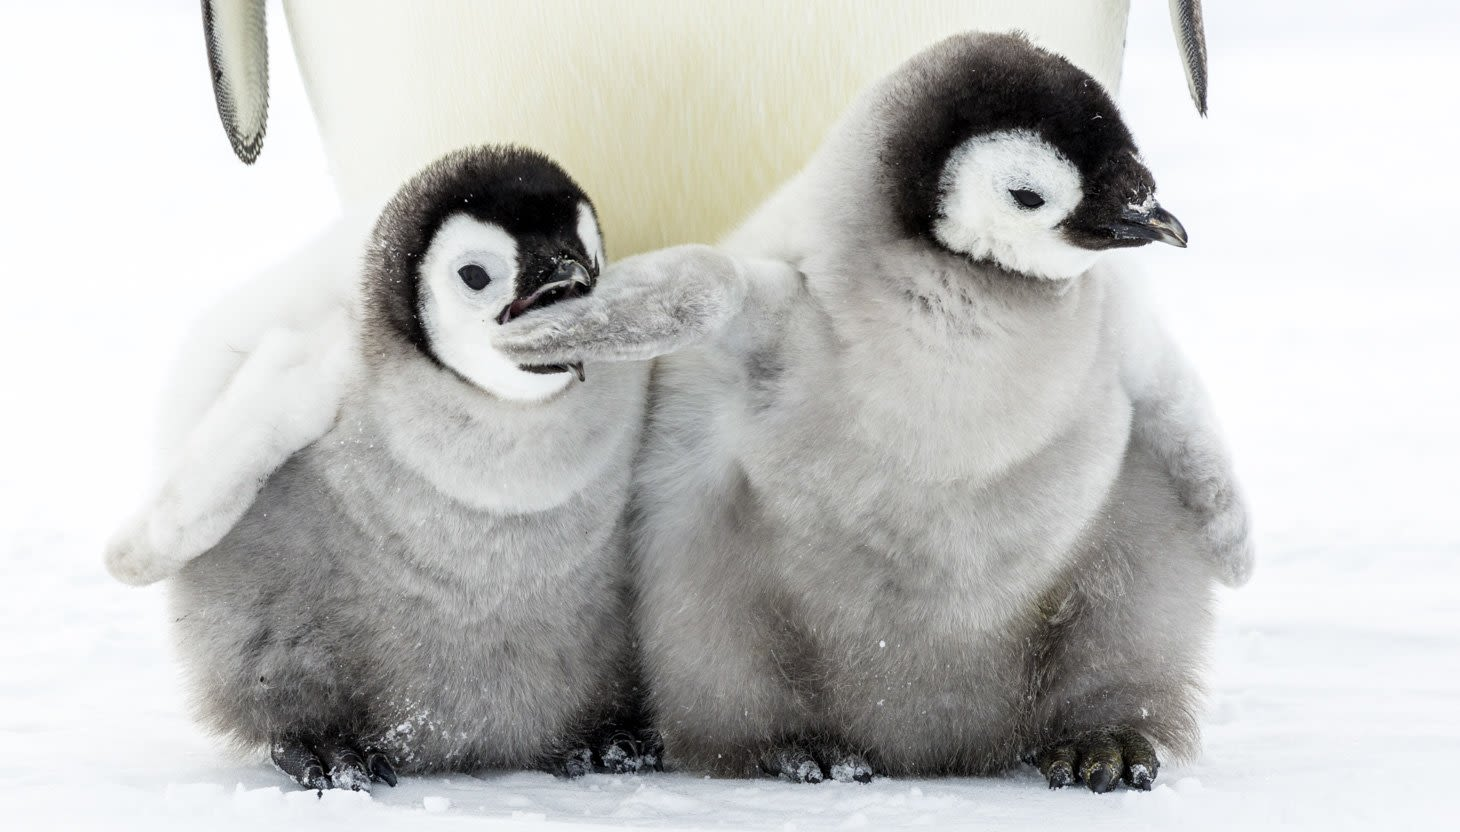 Two fluffy baby penguins, one biting the other's wing